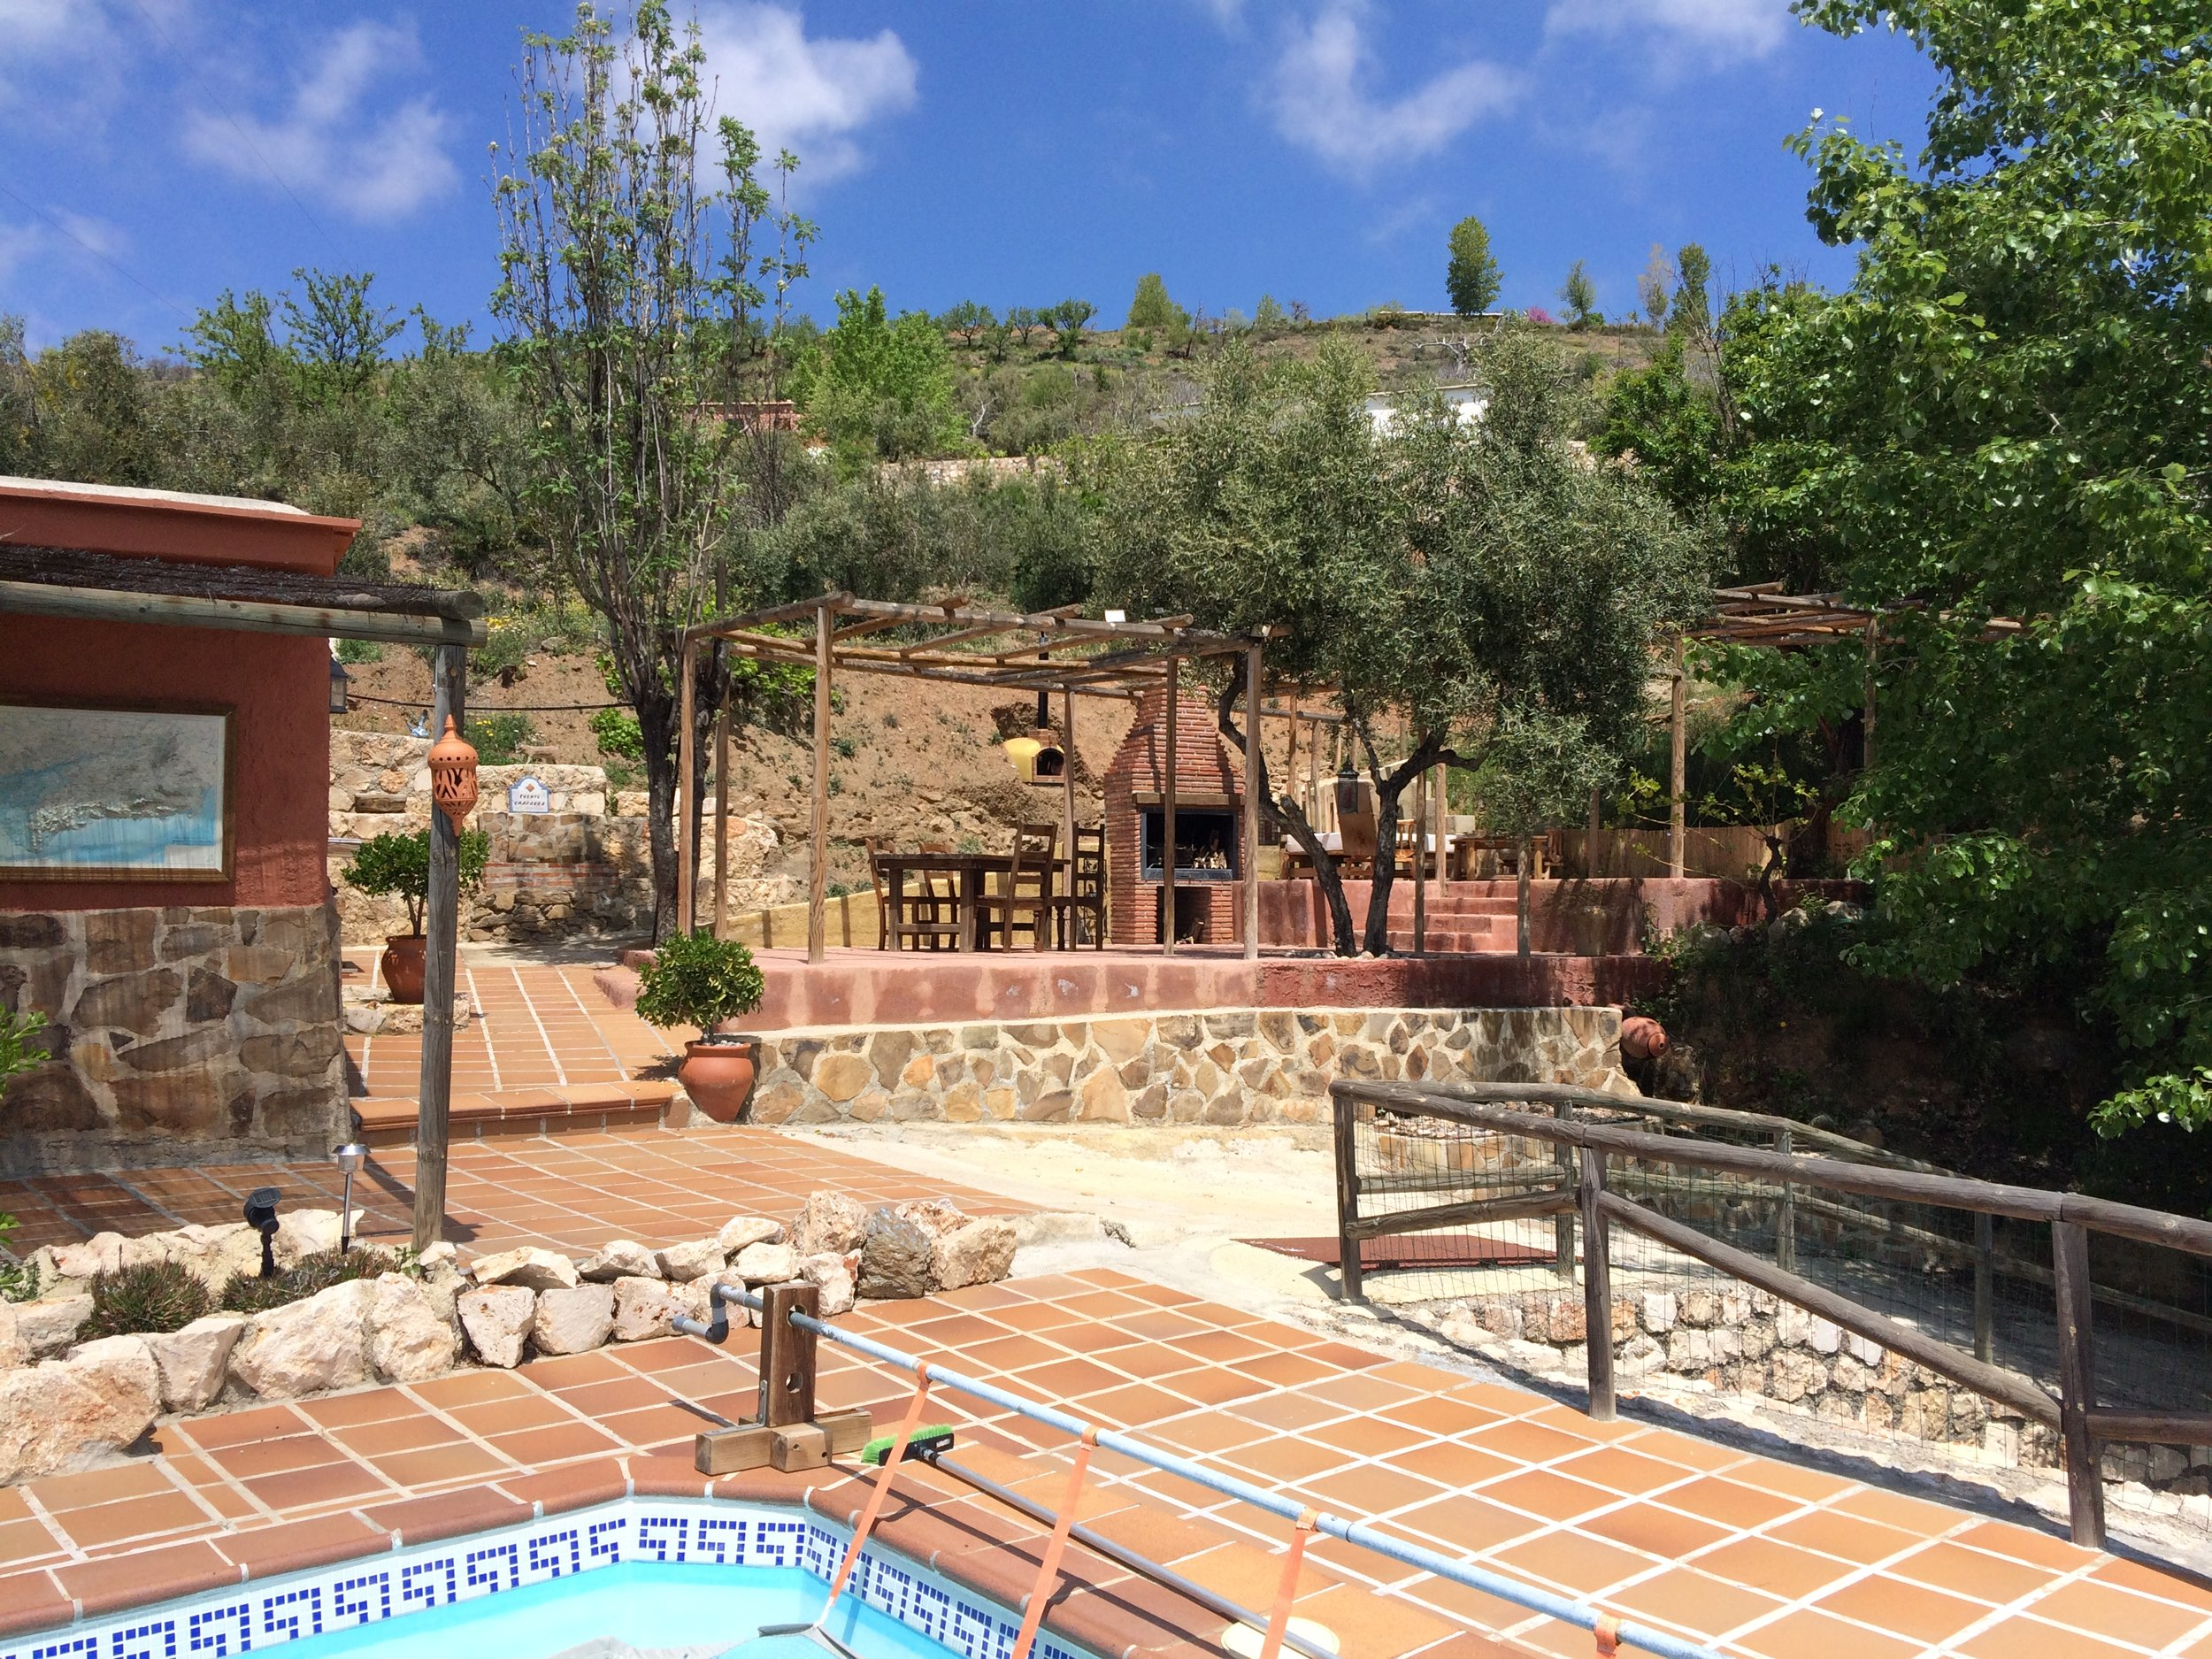 Our Breakfast Terrace, guest lounge with BBQ/Fireplace and Pizza Oven